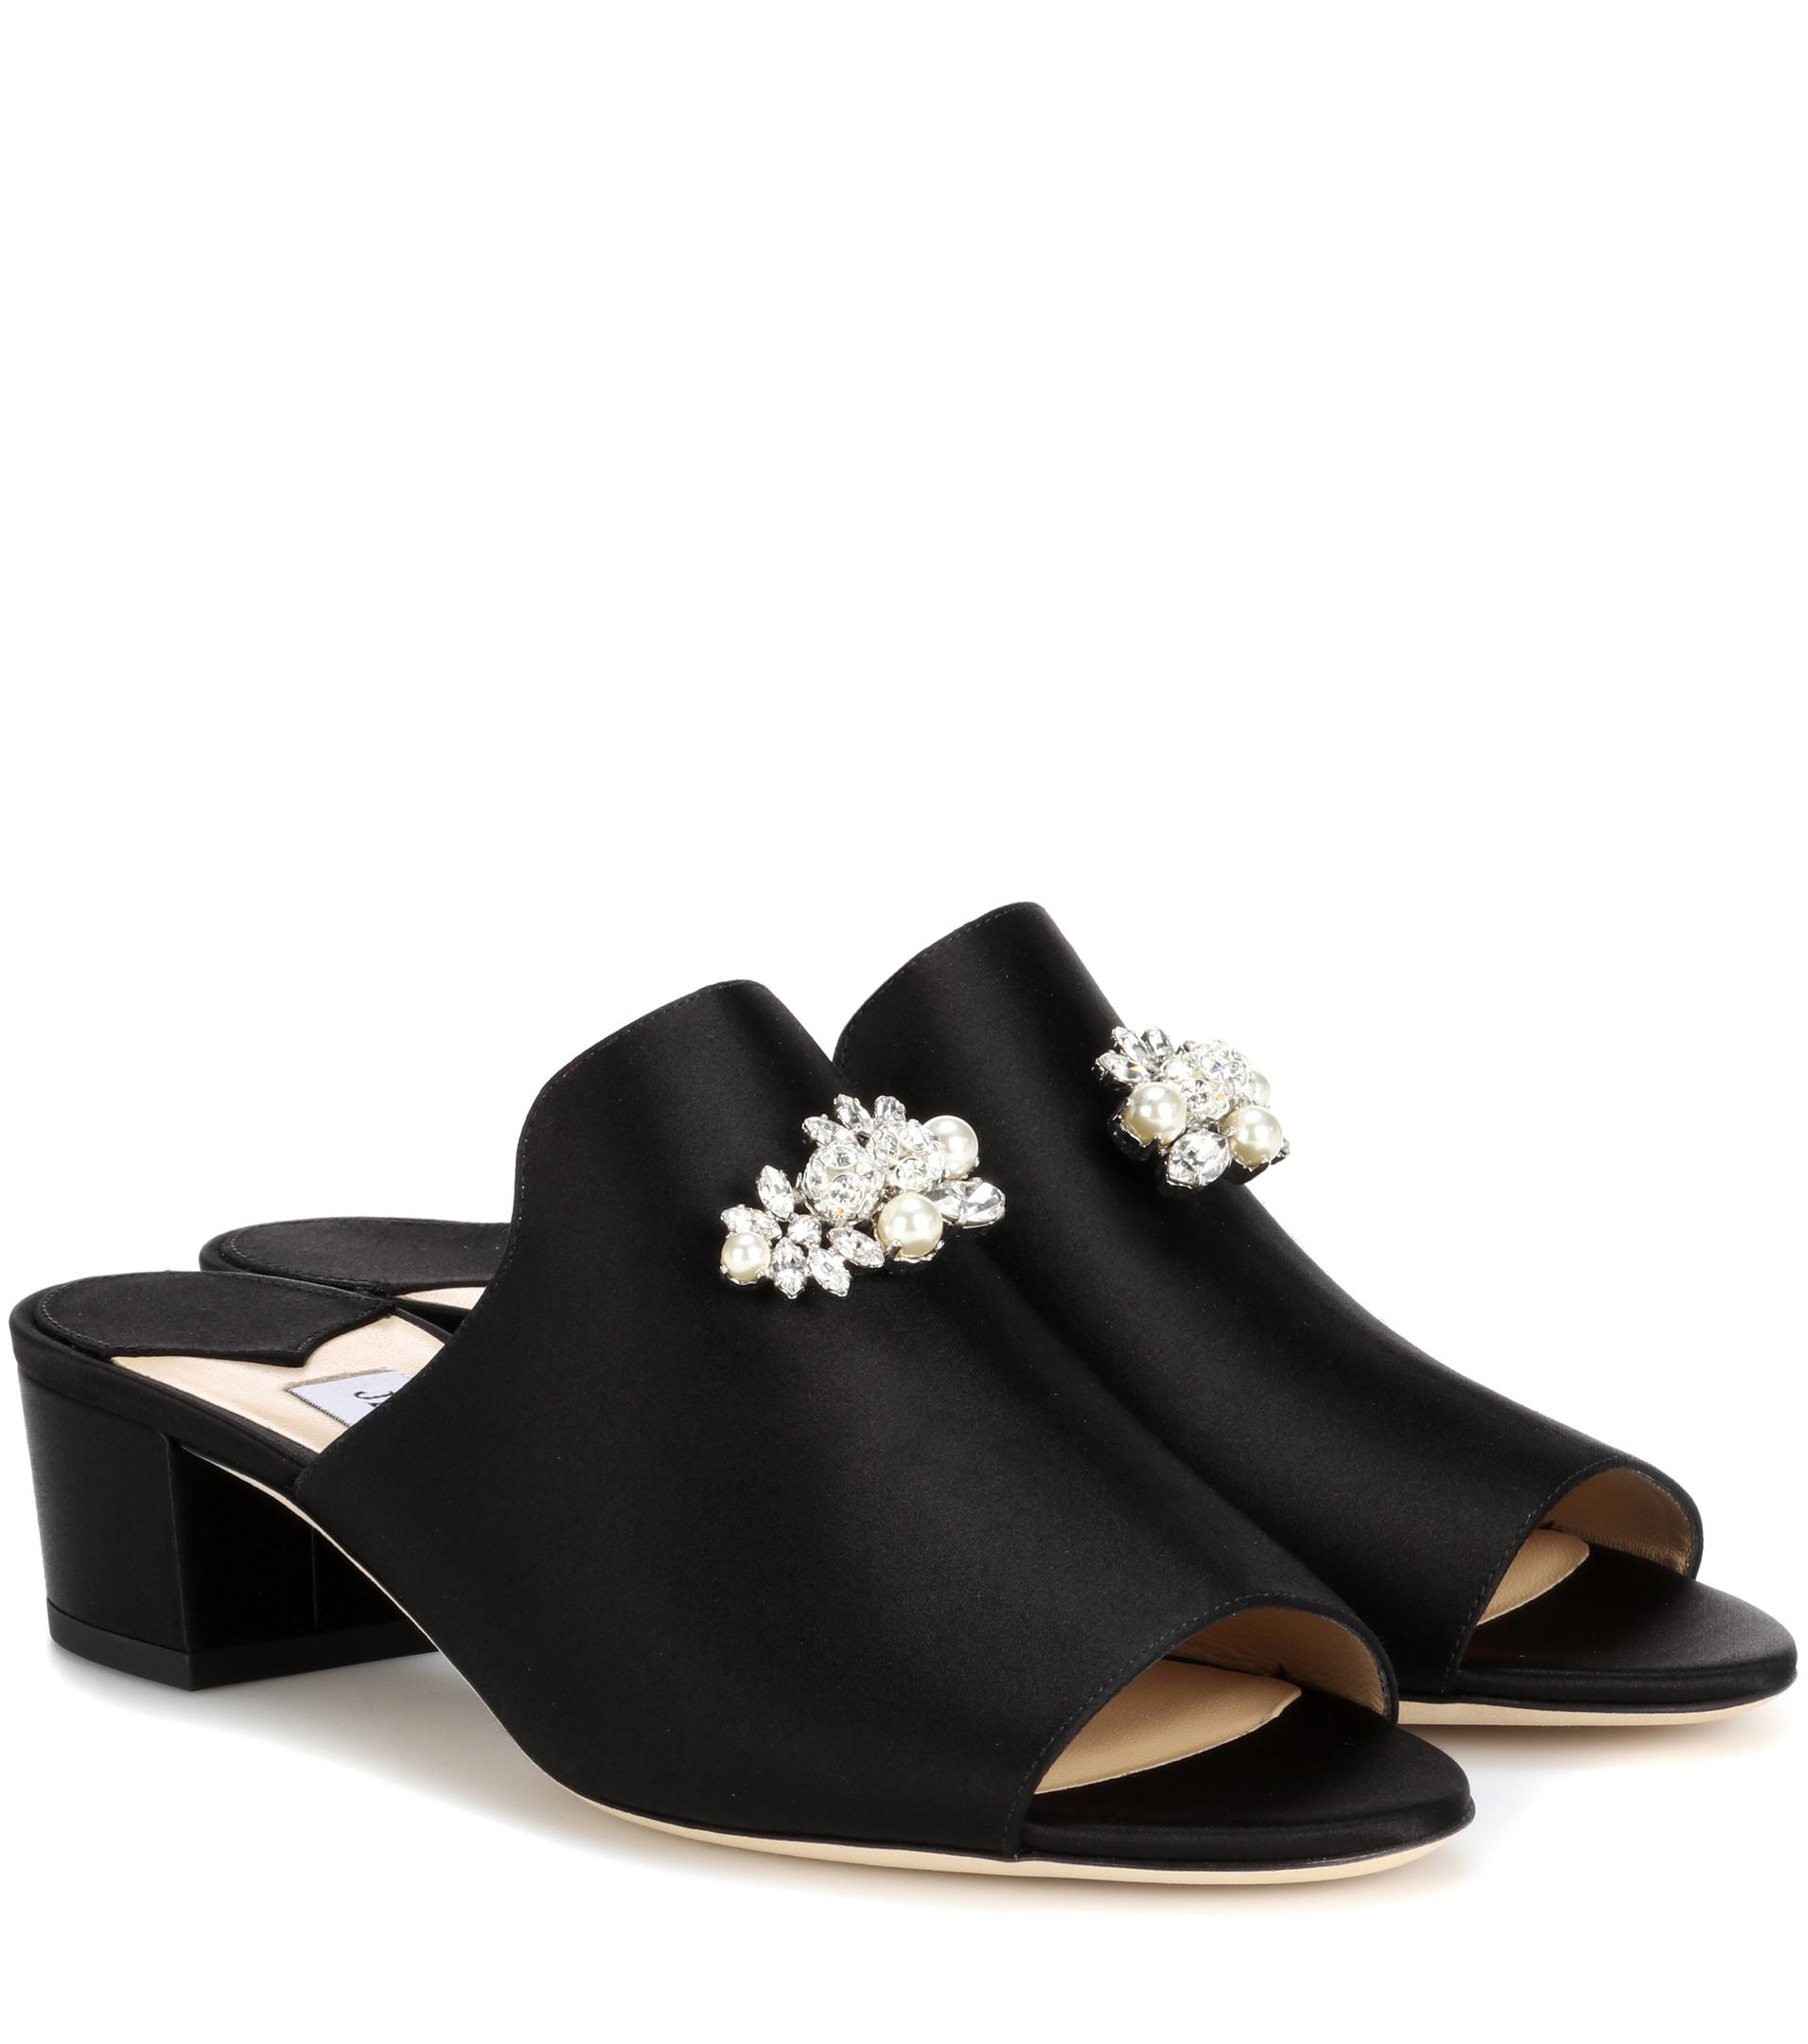 cheap sale countdown package Jimmy Choo Satin Embellished Mules cheap countdown package cheap sale ebay many kinds of lowest price online 3KbDB